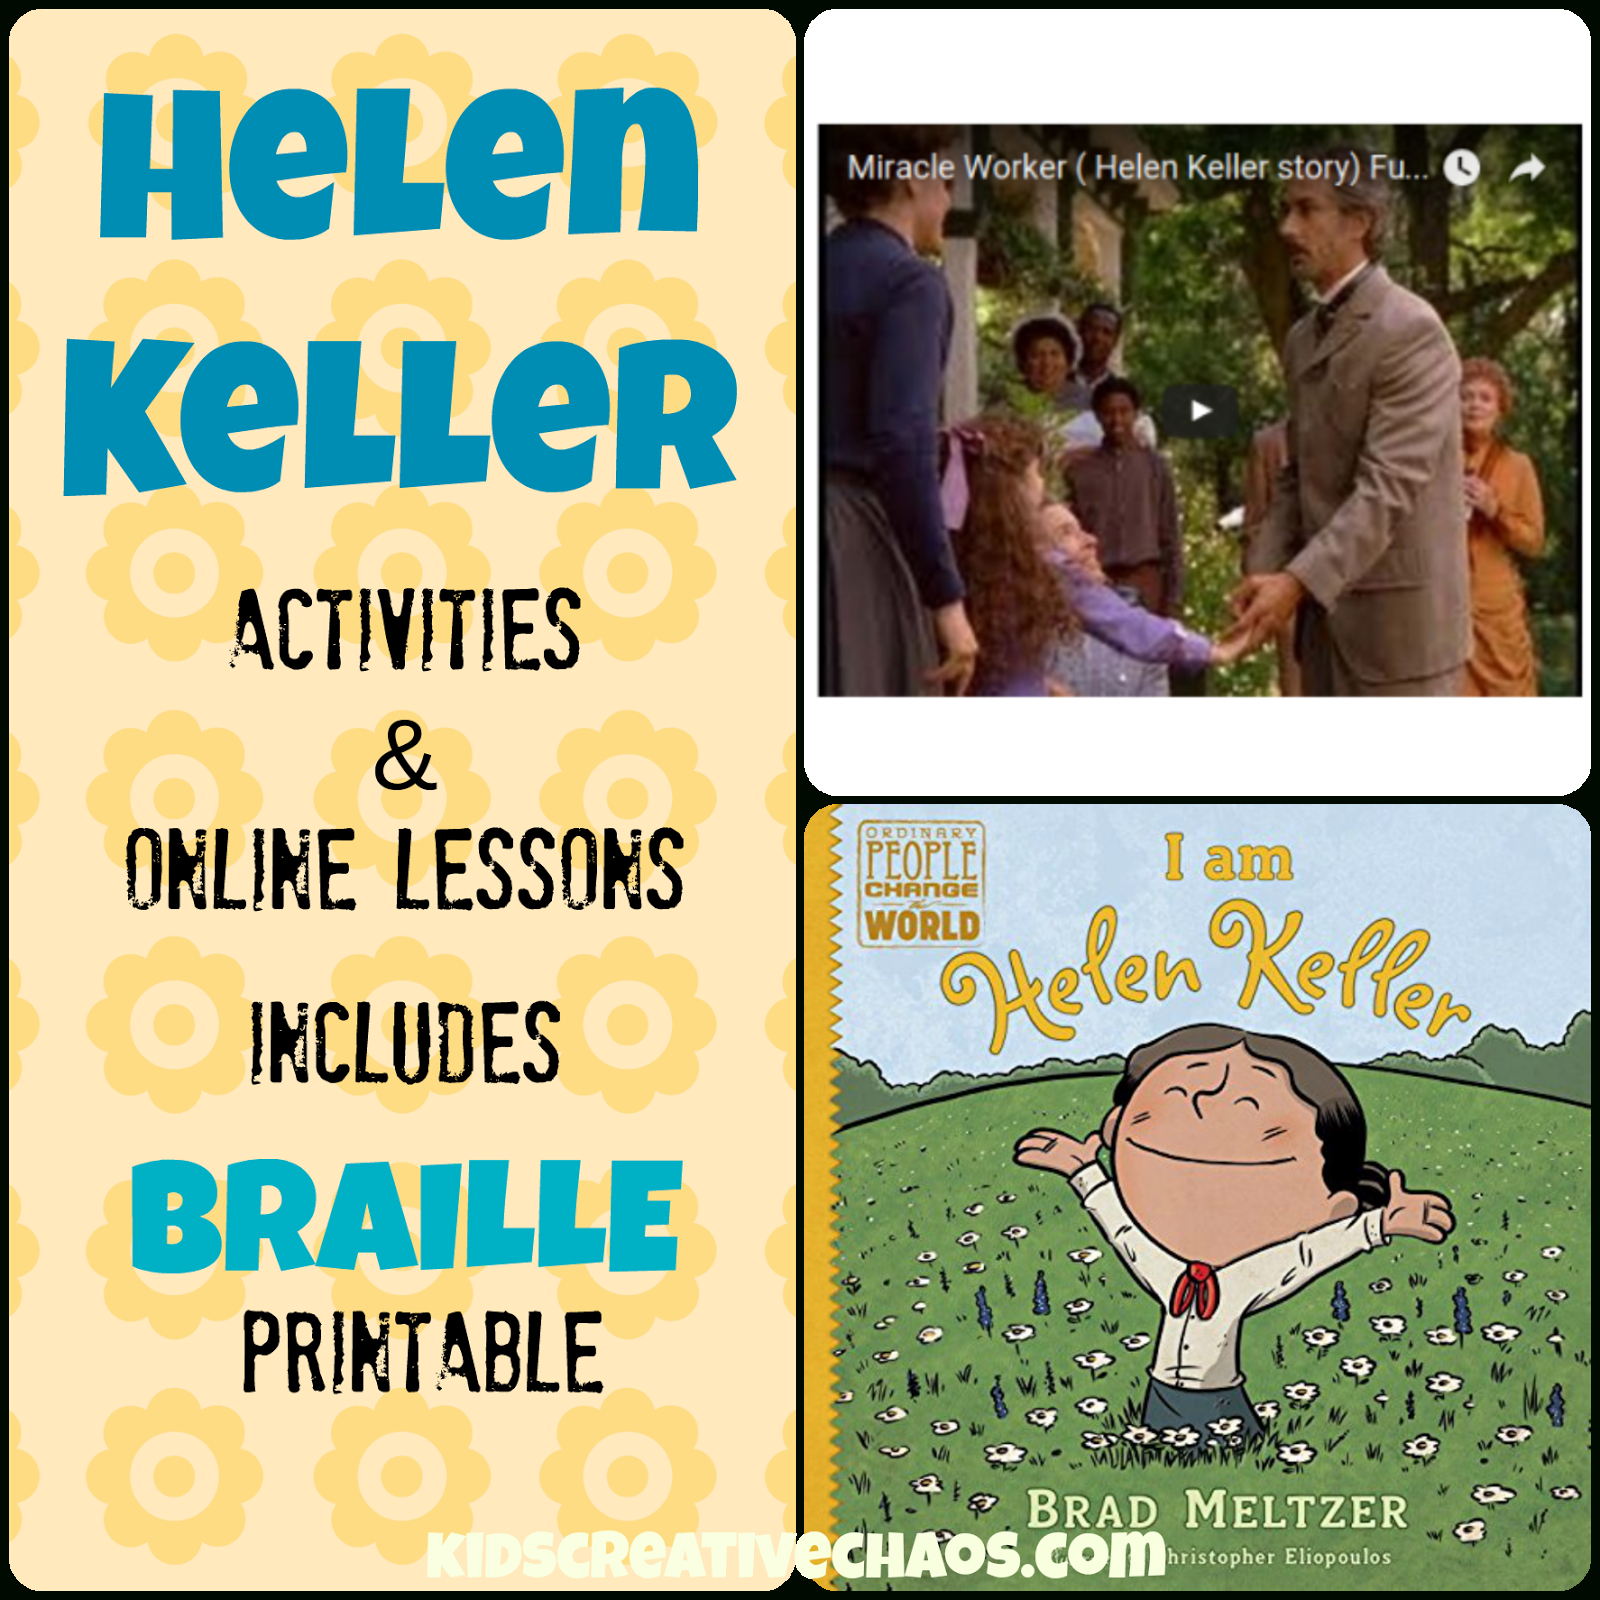 Helen Keller Lesson Plans Elementary Middle School - Kids Creative Chaos - Free Printable Pictures Of Helen Keller